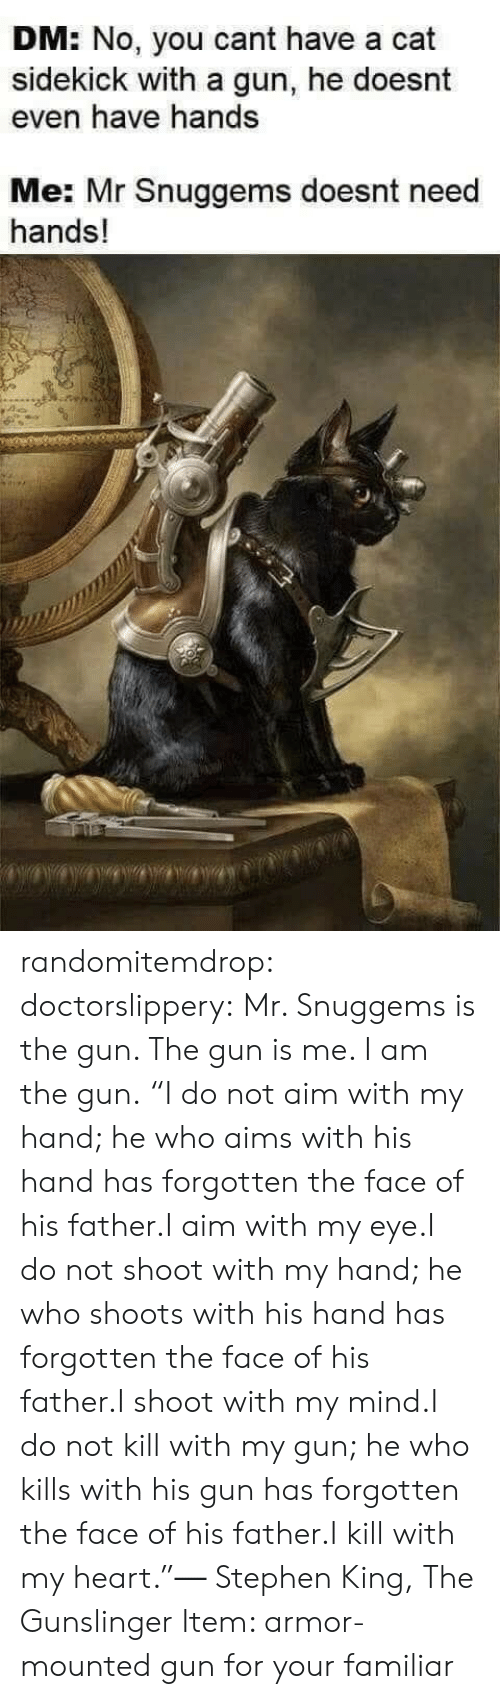 """Stephen, Tumblr, and Work: DM: No, you cant have a cat  sidekick with a gun, he doesnt  even have hands  Me: Mr Snuggems doesnt need  hands! randomitemdrop: doctorslippery:  Mr. Snuggems is the gun. The gun is me. I am the gun.   """"I do not aim with my hand; he who aims with his hand has forgotten the face of his father.I aim with my eye.I do not shoot with my hand; he who shoots with his hand has forgotten the face of his father.I shoot with my mind.I do not kill with my gun; he who kills with his gun has forgotten the face of his father.I kill with my heart.""""― Stephen King, The Gunslinger    Item: armor-mounted gun for your familiar"""